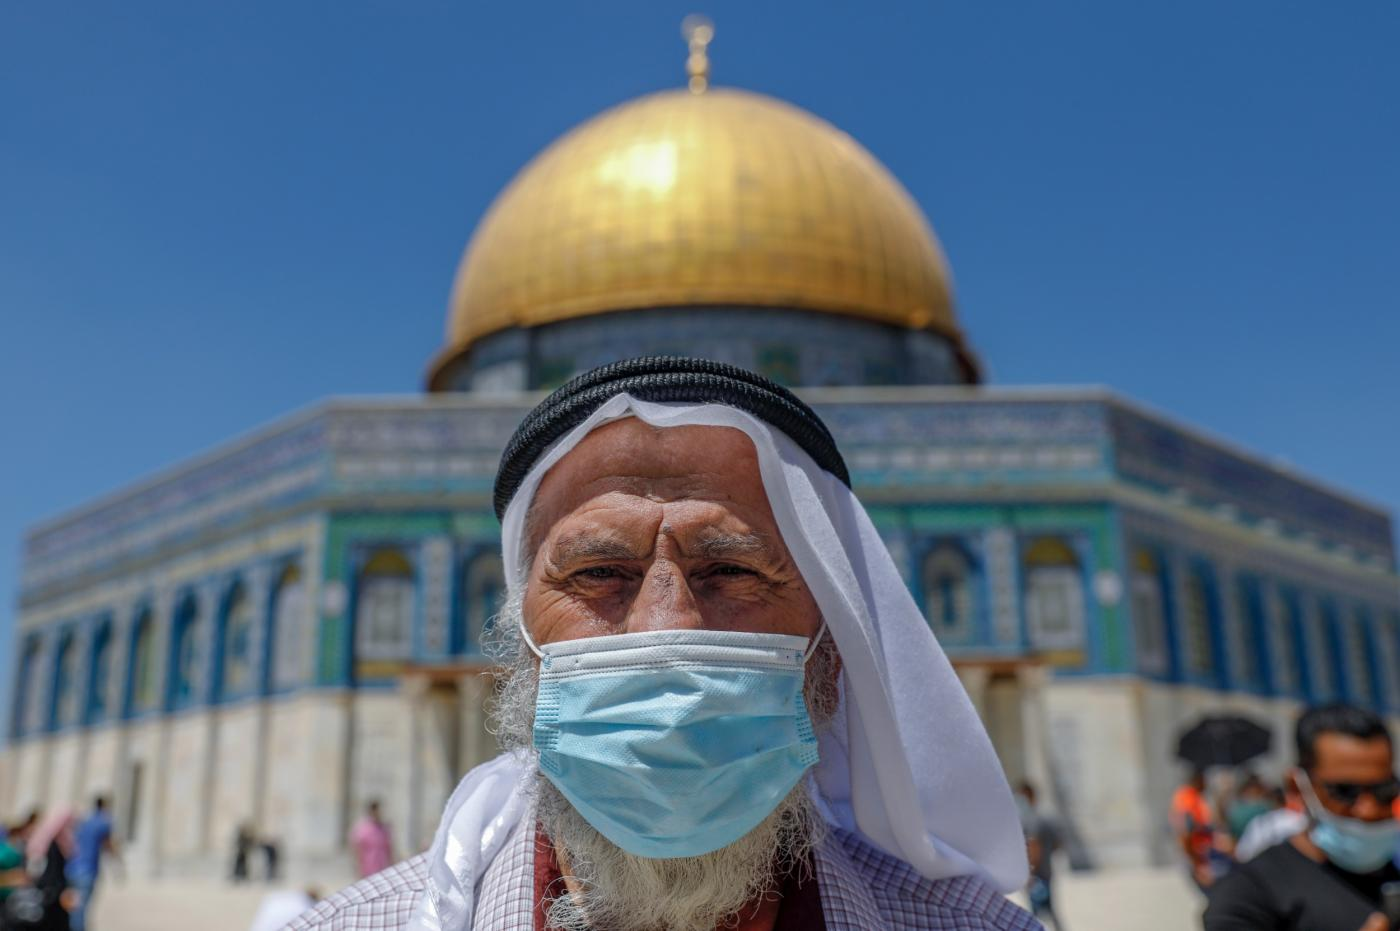 Occupied East Jerusalem's Al-Aqsa Mosque compound